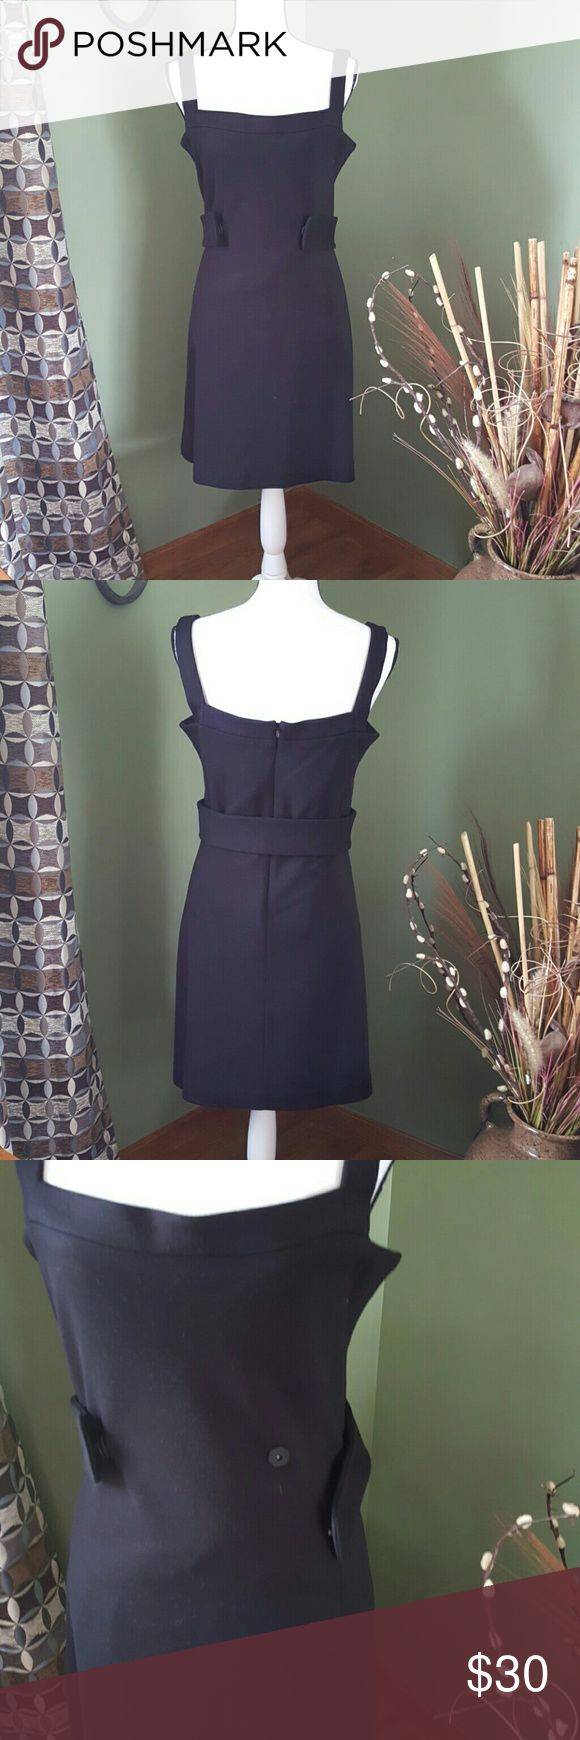 Black jumper style dress Completely lined jumper dress is a mix of wool, acrylic, spandex and nylon.  Zippered in back with detachable belt. Never worn MODA International is one of victorias secrets past clothing lines. Moda International Dresses